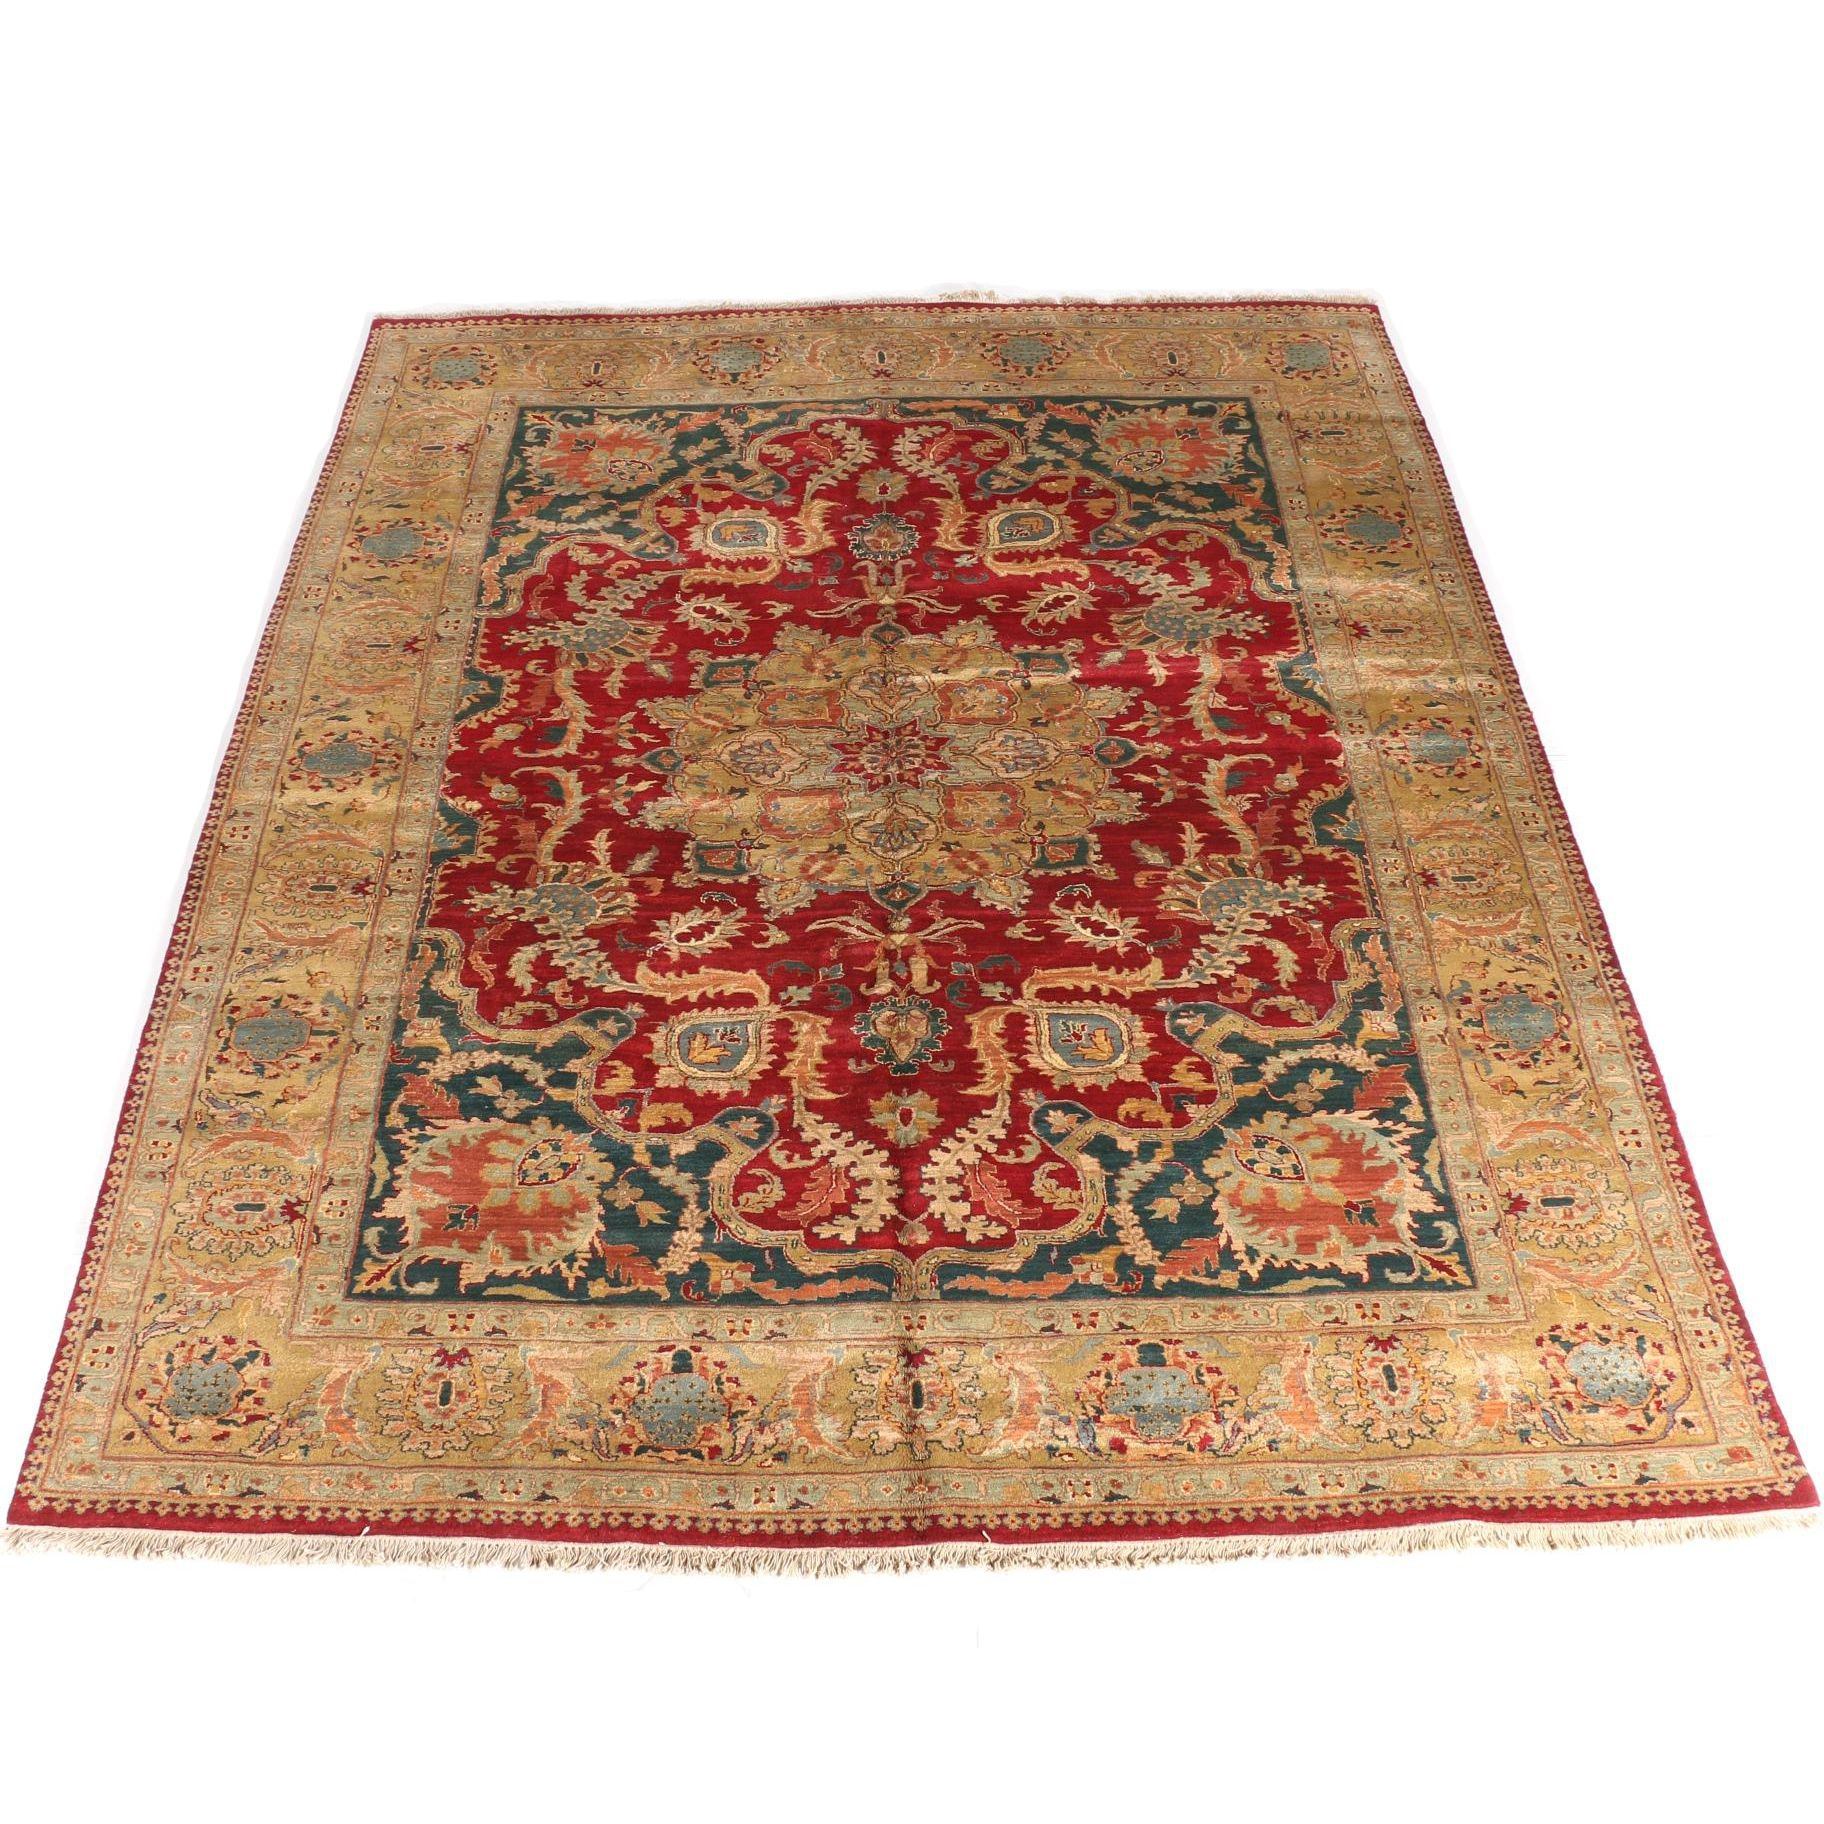 Large Hand-Knotted Indian Agra Rug